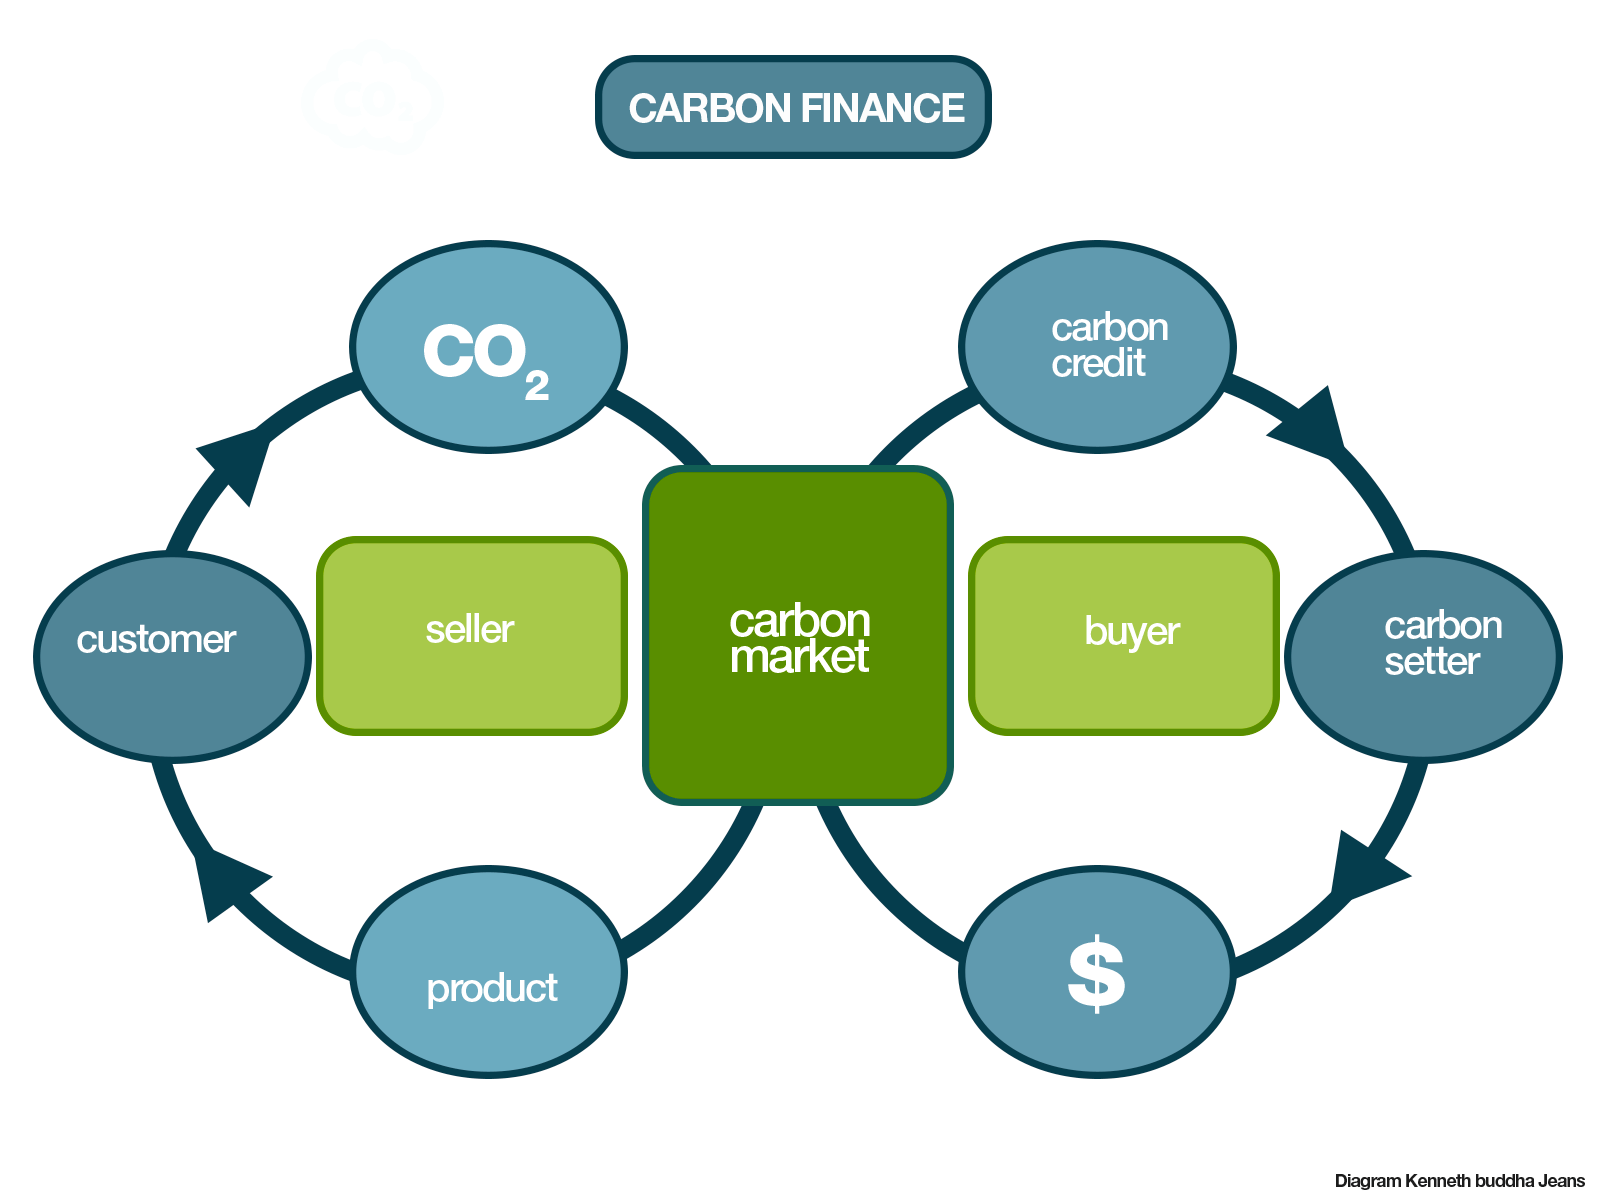 eco fashion dictionary carbon finance diagram graphics kenneth buddha jeans [ 1600 x 1200 Pixel ]